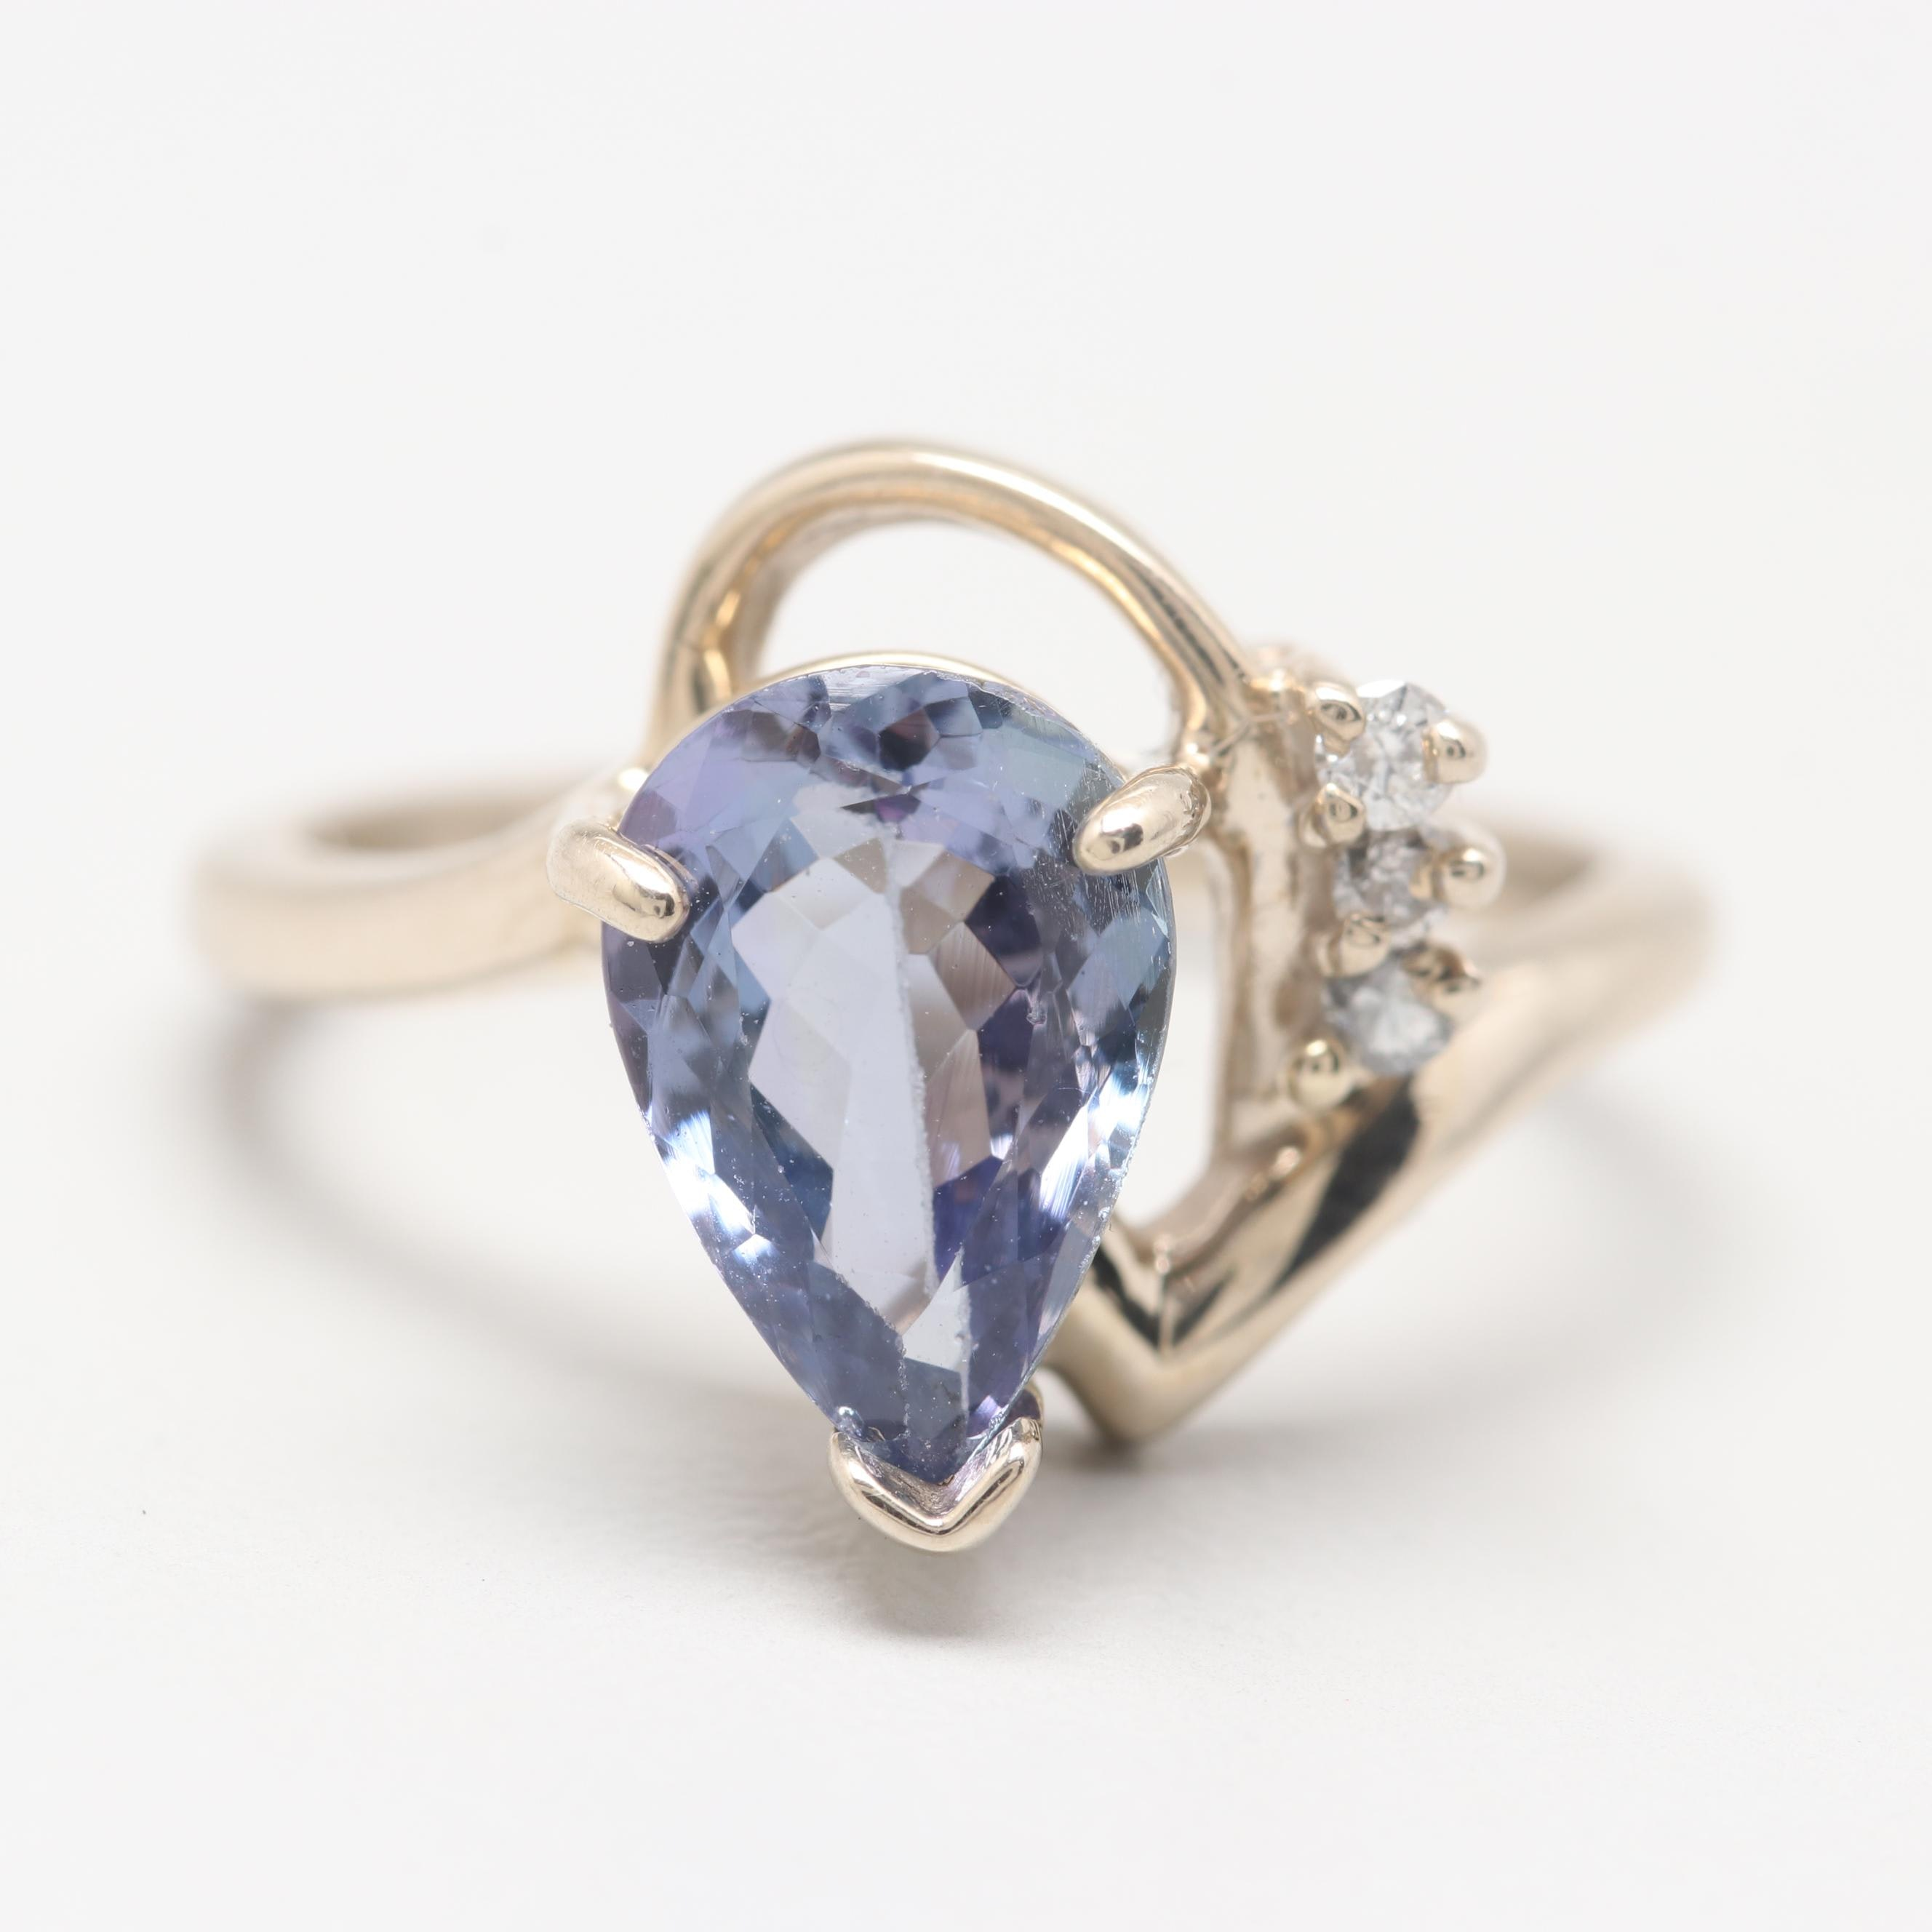 14K White Gold Tanzanite Ring with Diamond Accents